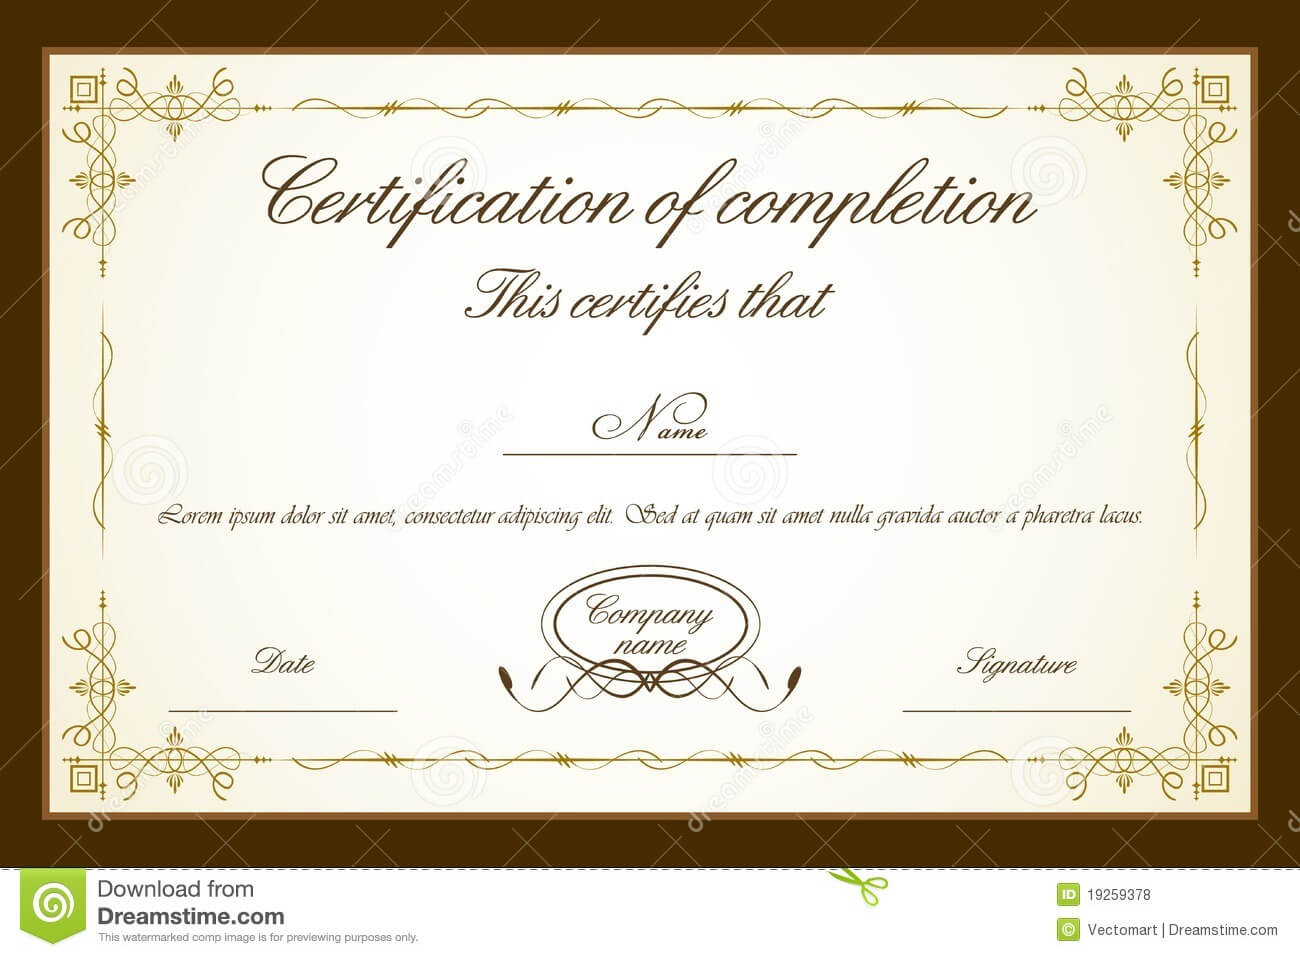 020 Certificate Template Free Blank Templates Wonderful regarding Free Completion Certificate Templates For Word